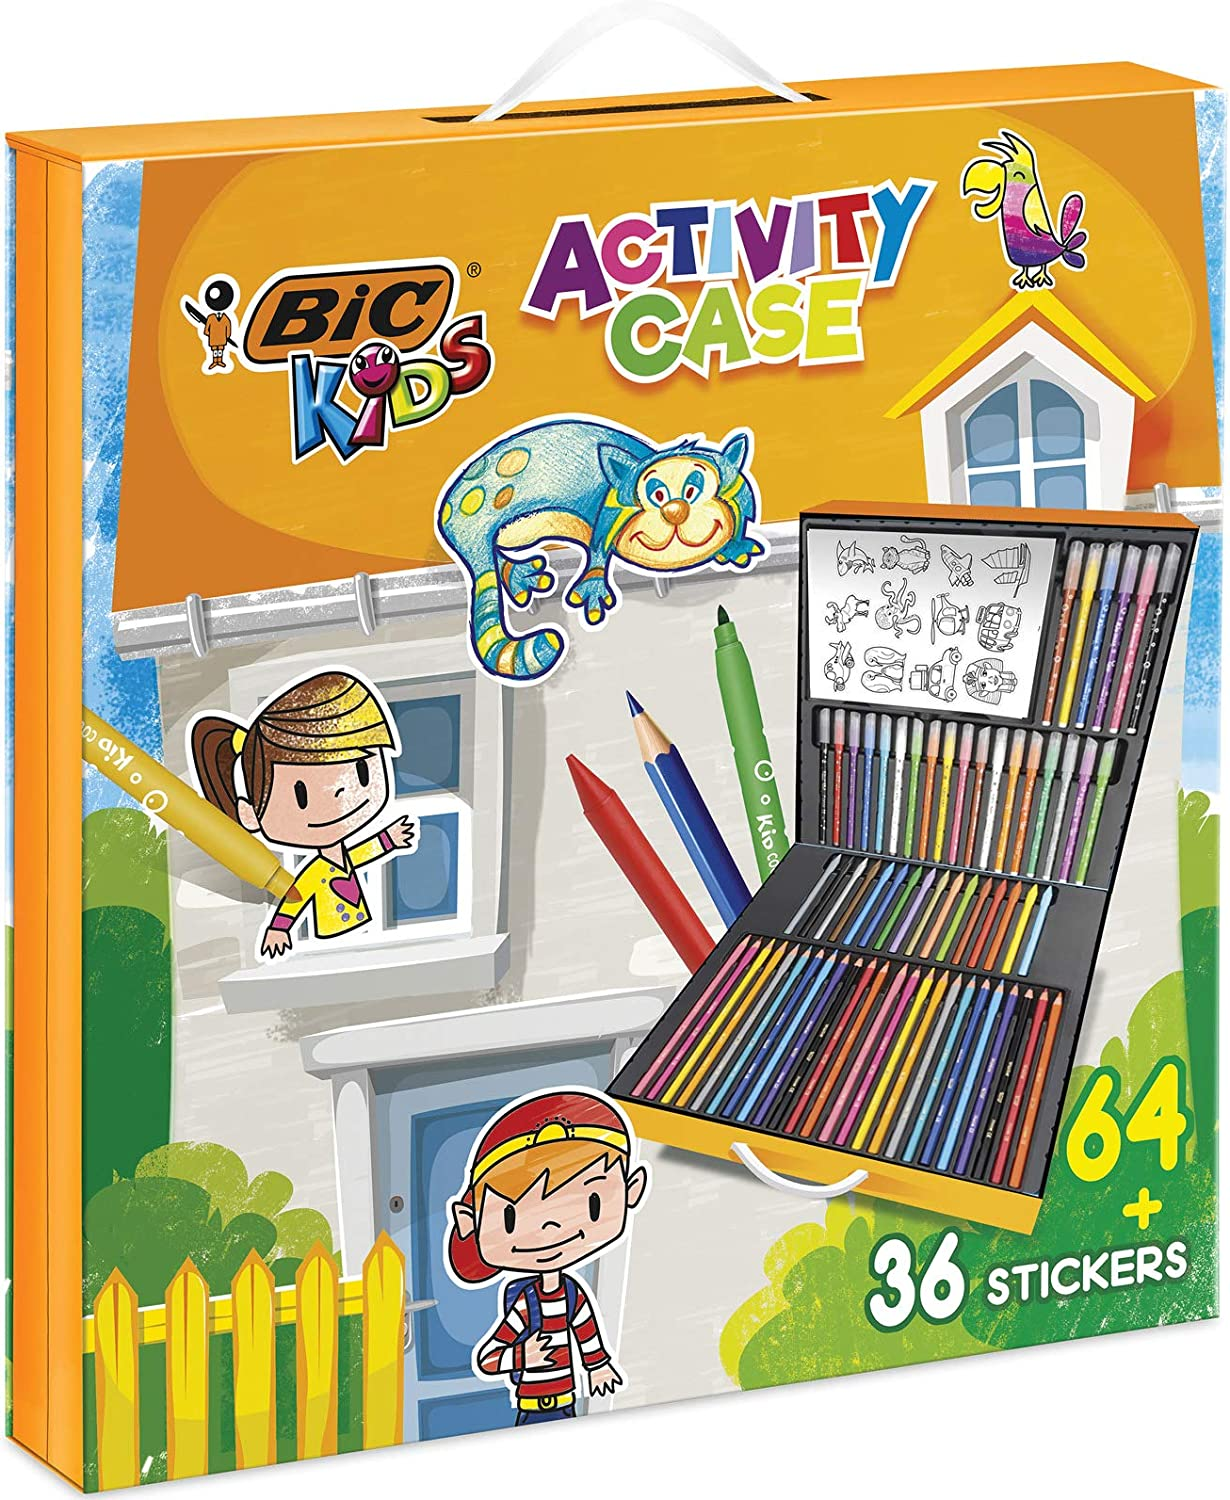 Bic Kids 961558 Activity Case - 24 Lápices de Colores /24 Rotuladores /16 Ceras y 36 Adhesivos para Colorear